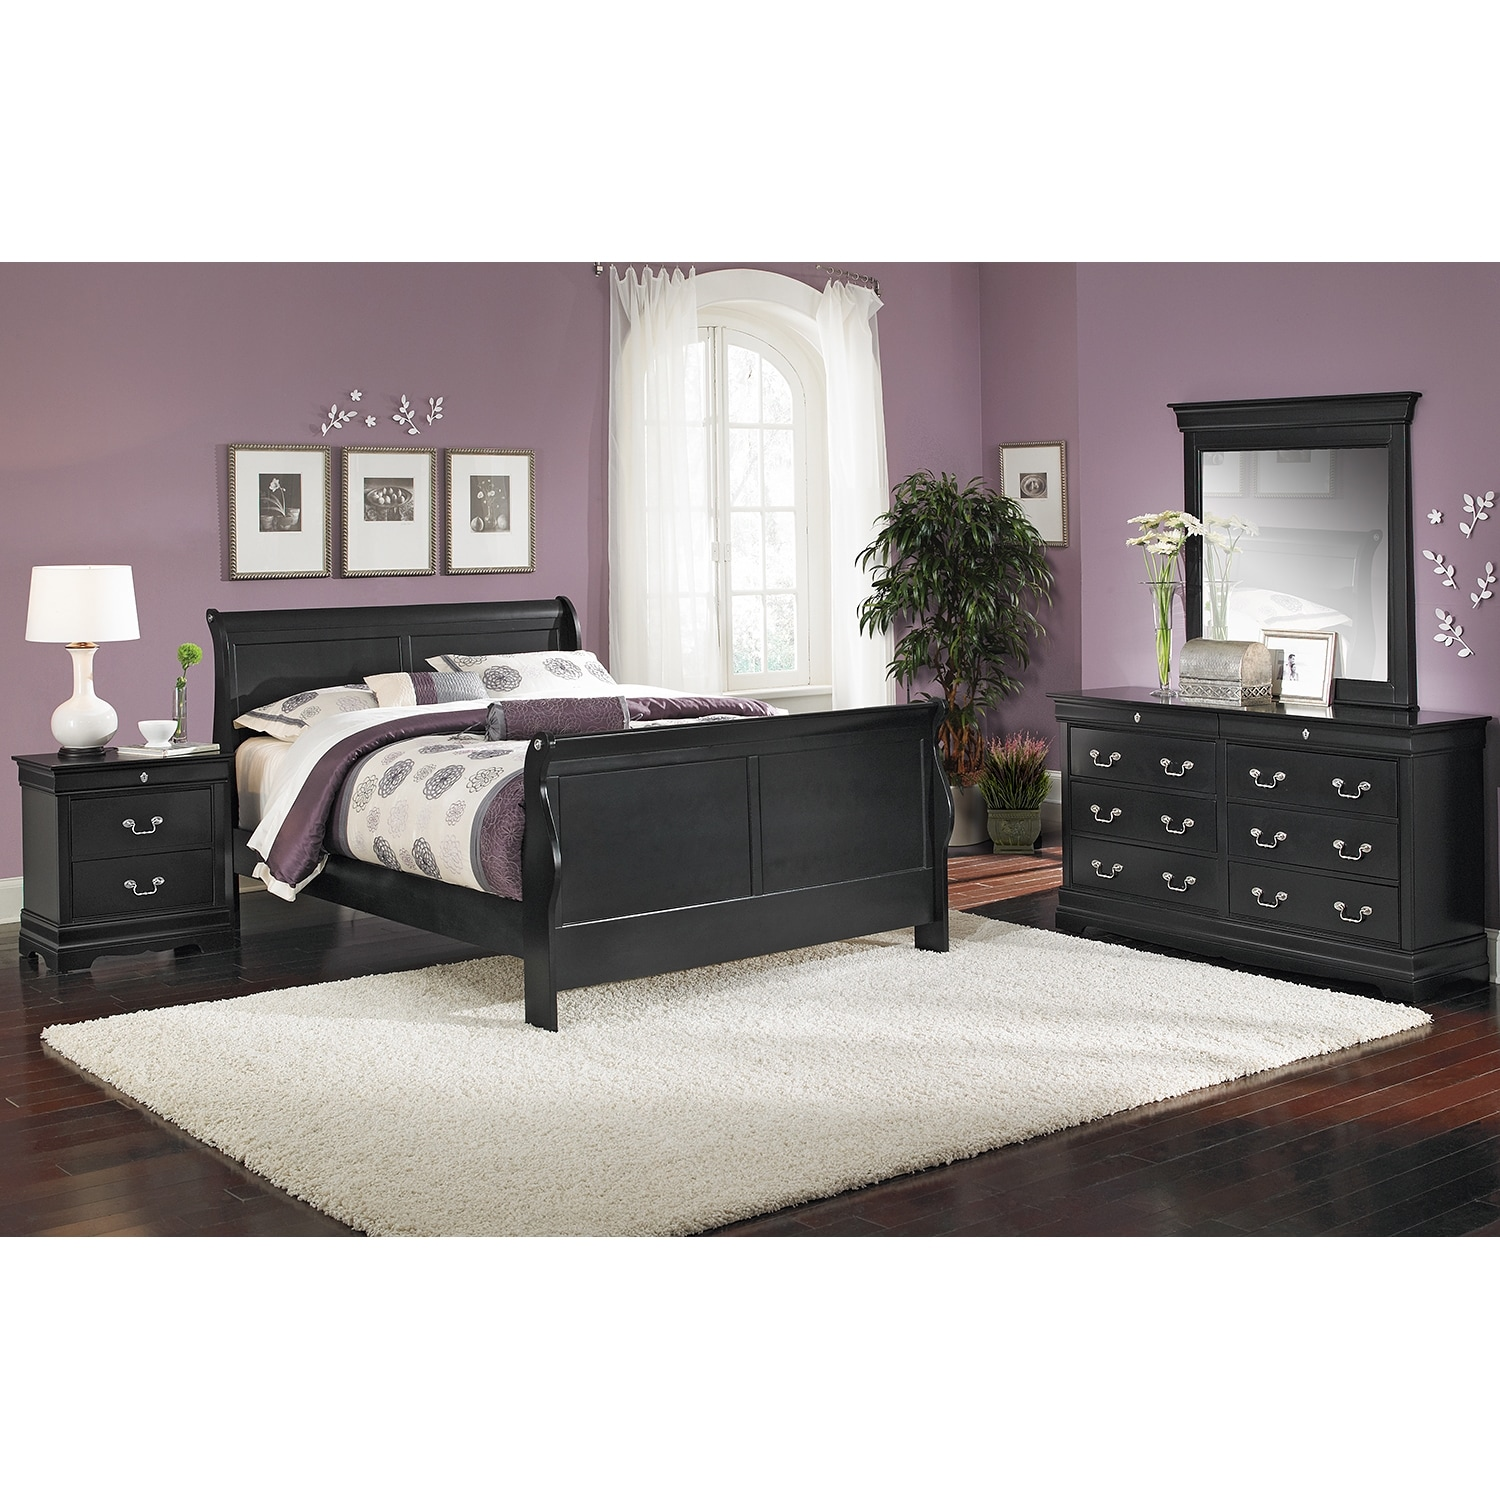 Bedroom Furniture - Neo Classic Black 6 Pc. Queen Bedroom